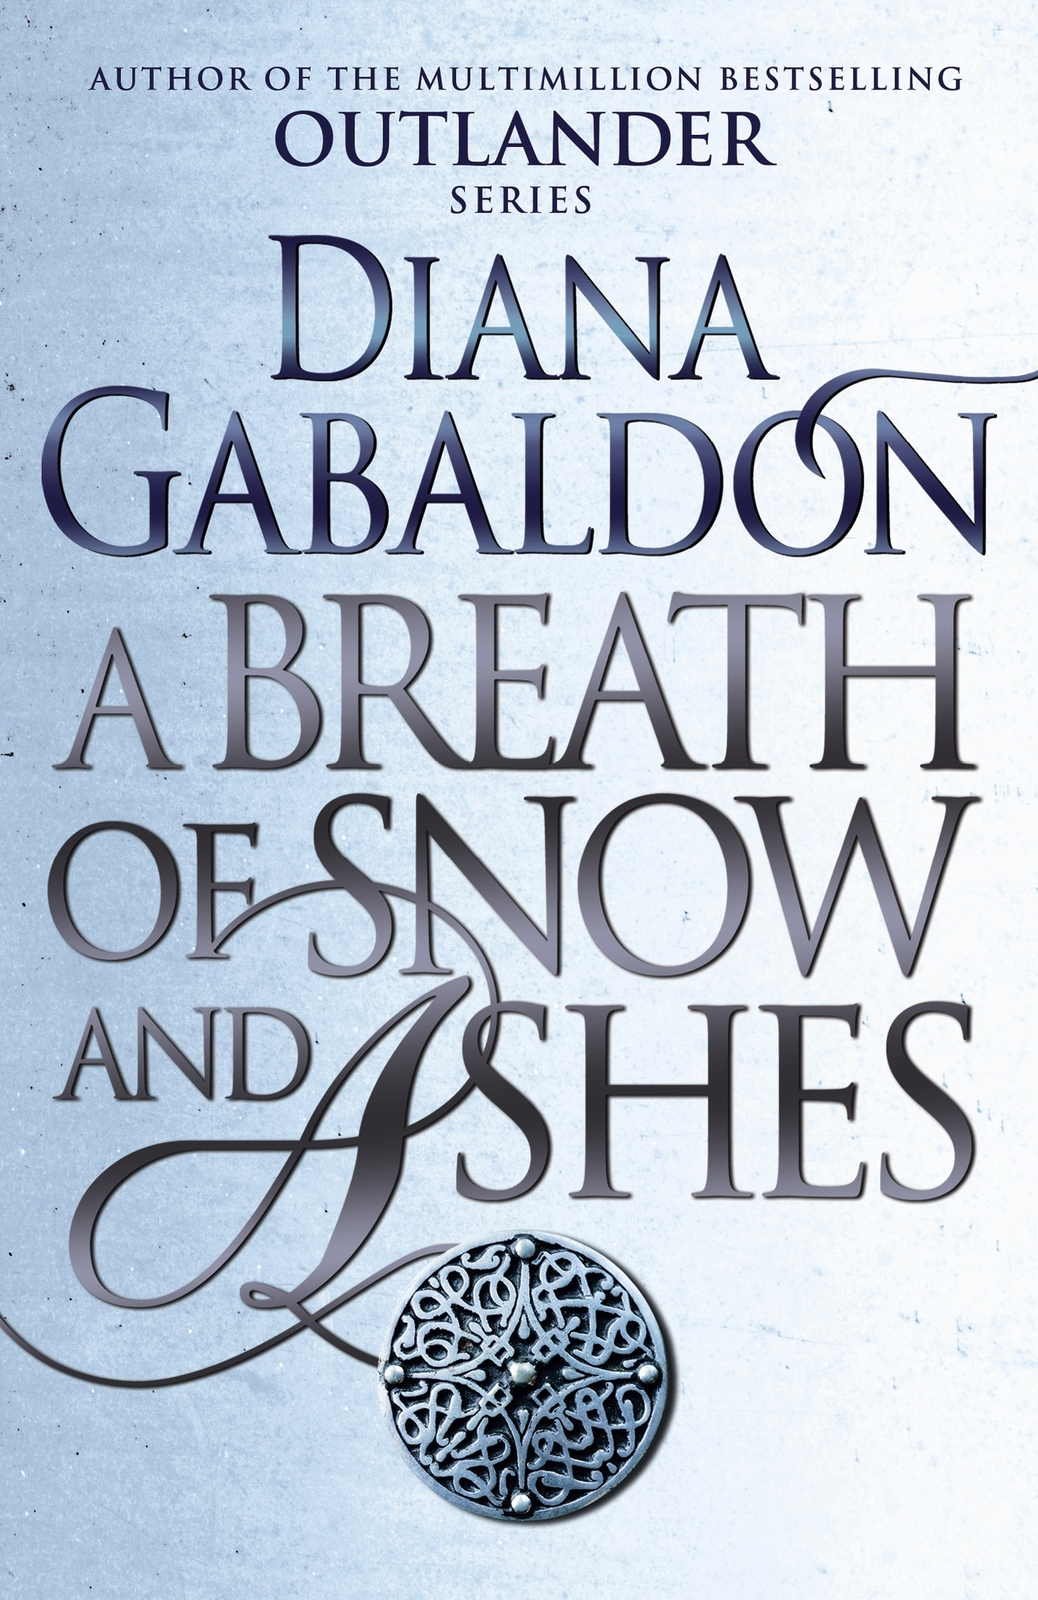 A Breath Of Snow And Ashes by Diana Gabaldon image